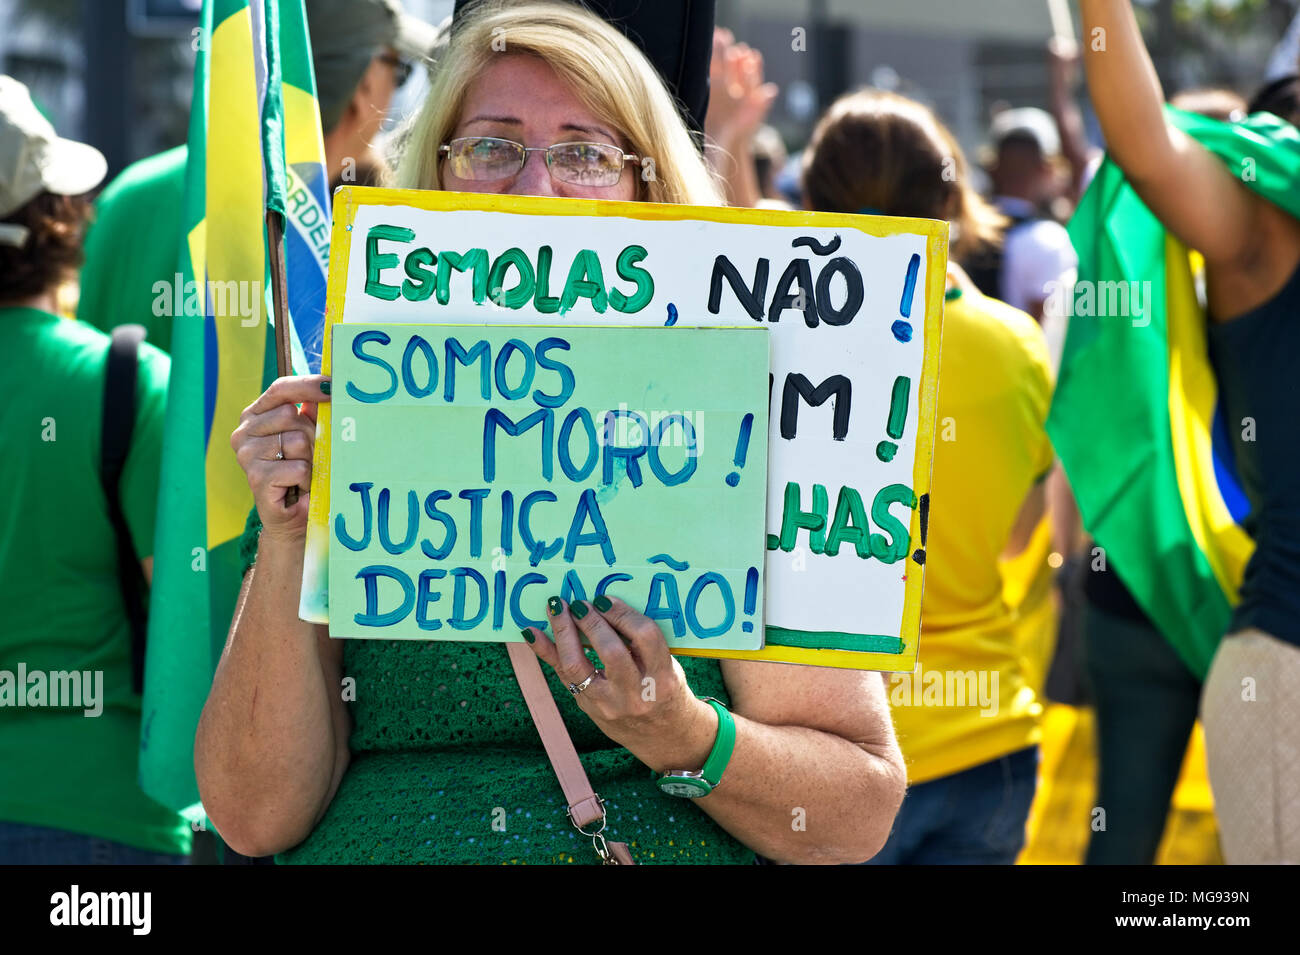 Brazil - July 31, 2016: A woman shows her support for anti-corruption efforts being pursued by the judge Sergio Moro and the Operation Car Wash - Stock Image